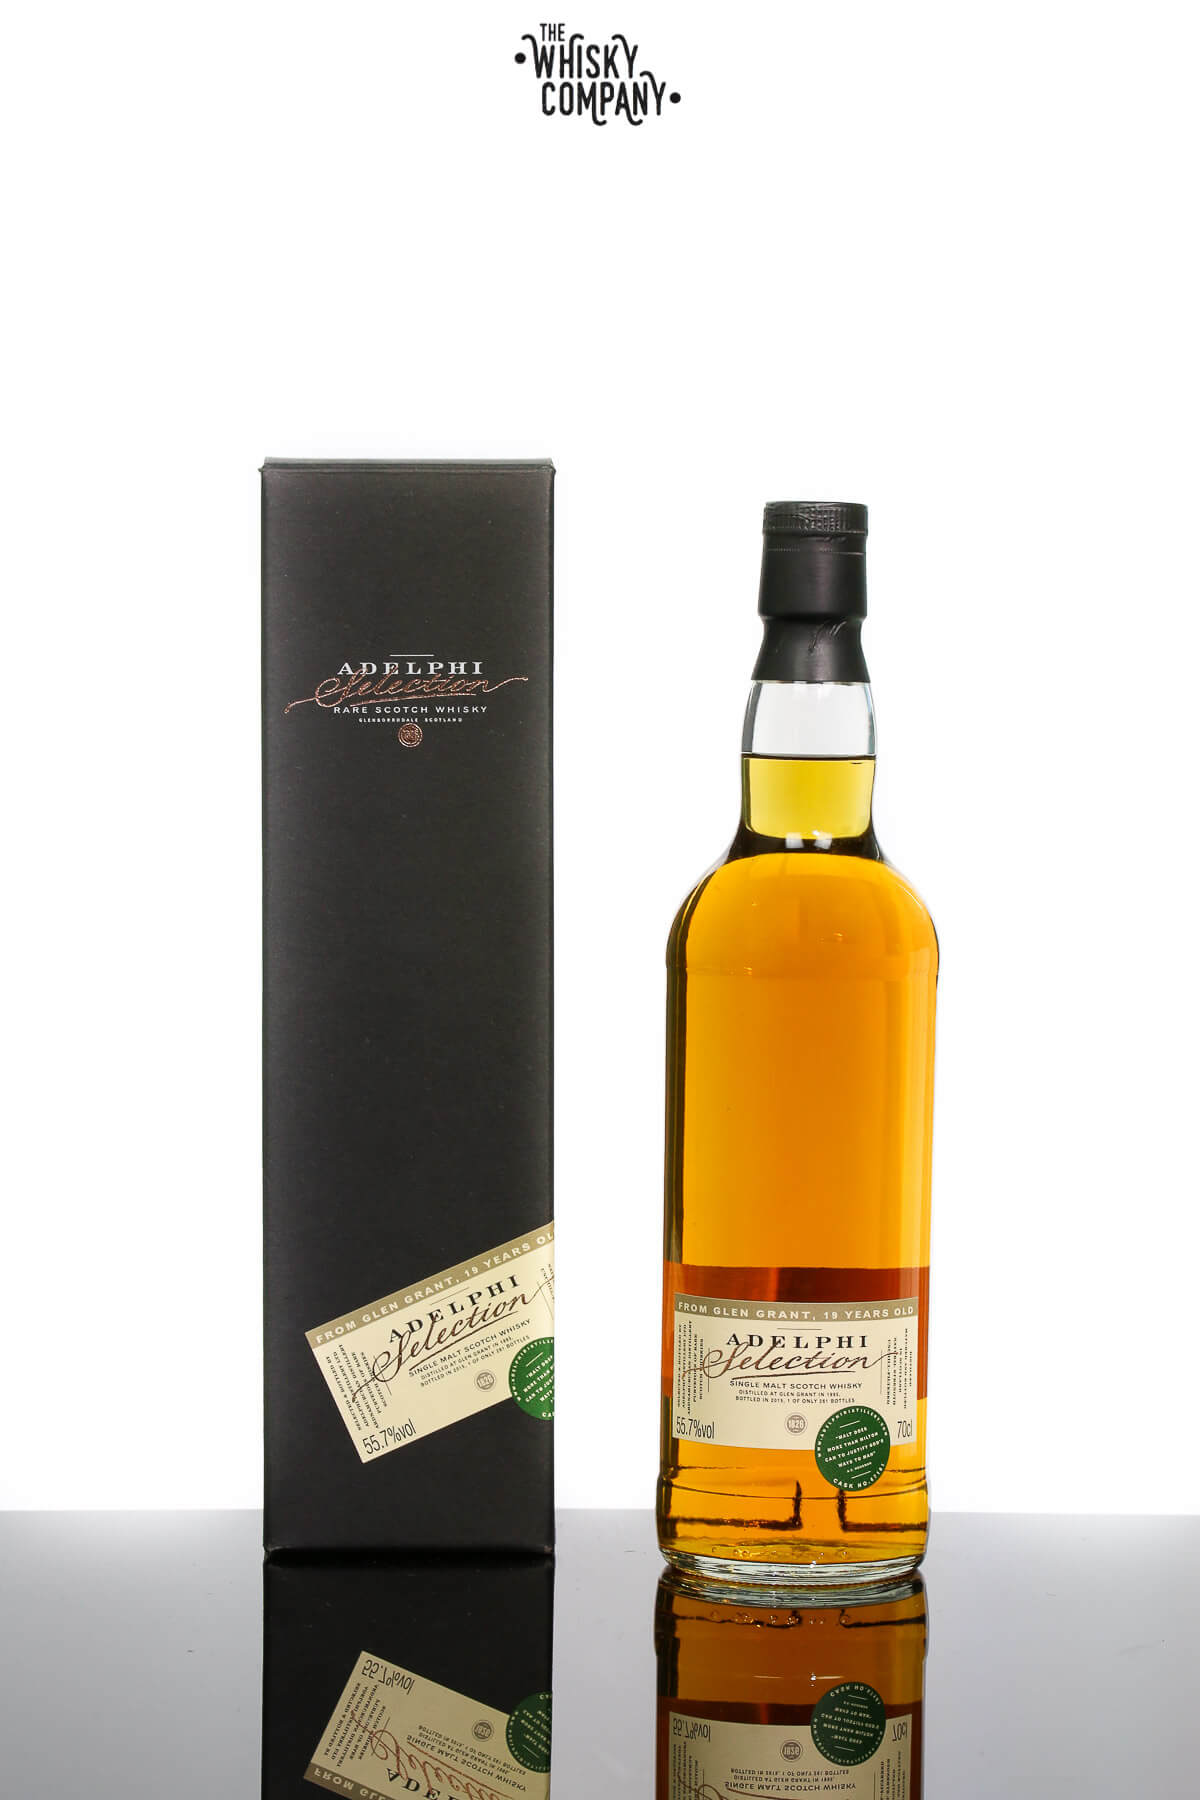 Adelphi 1995 Glen Grant 19 Years Old Single Malt Scotch Whisky